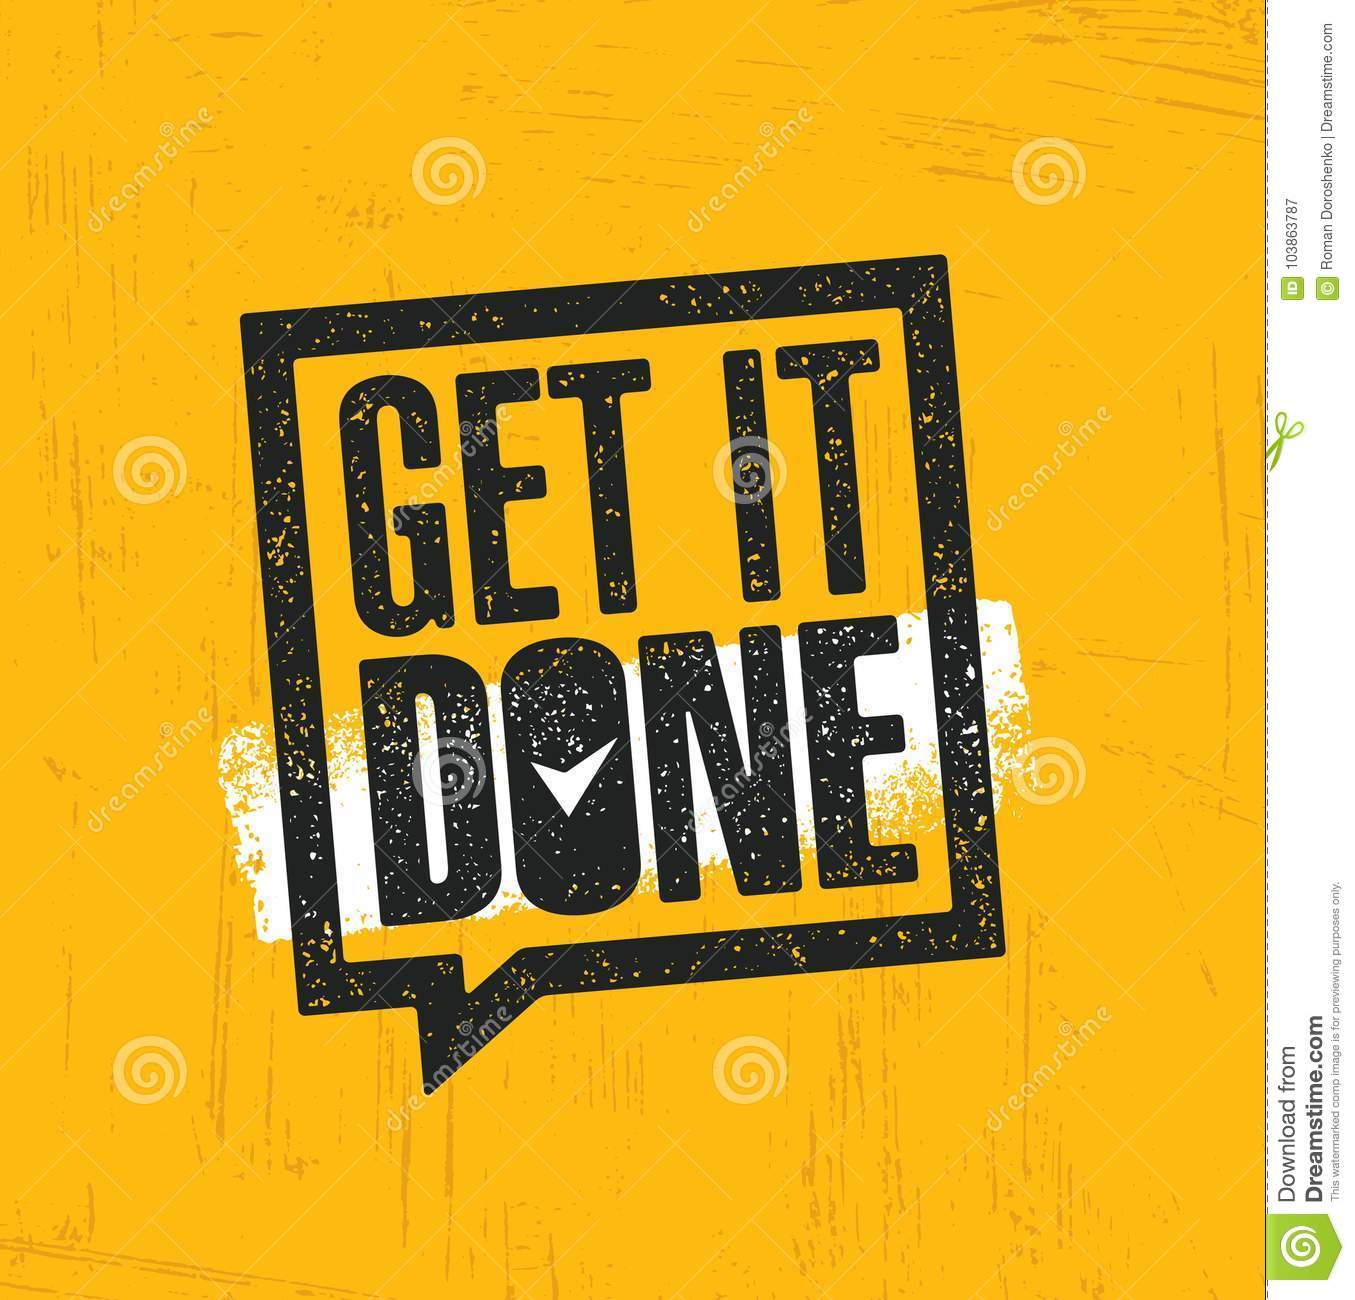 Get It Done. Inspiring Creative Motivation Quote Poster Template. Vector Typography Banner Design Concept